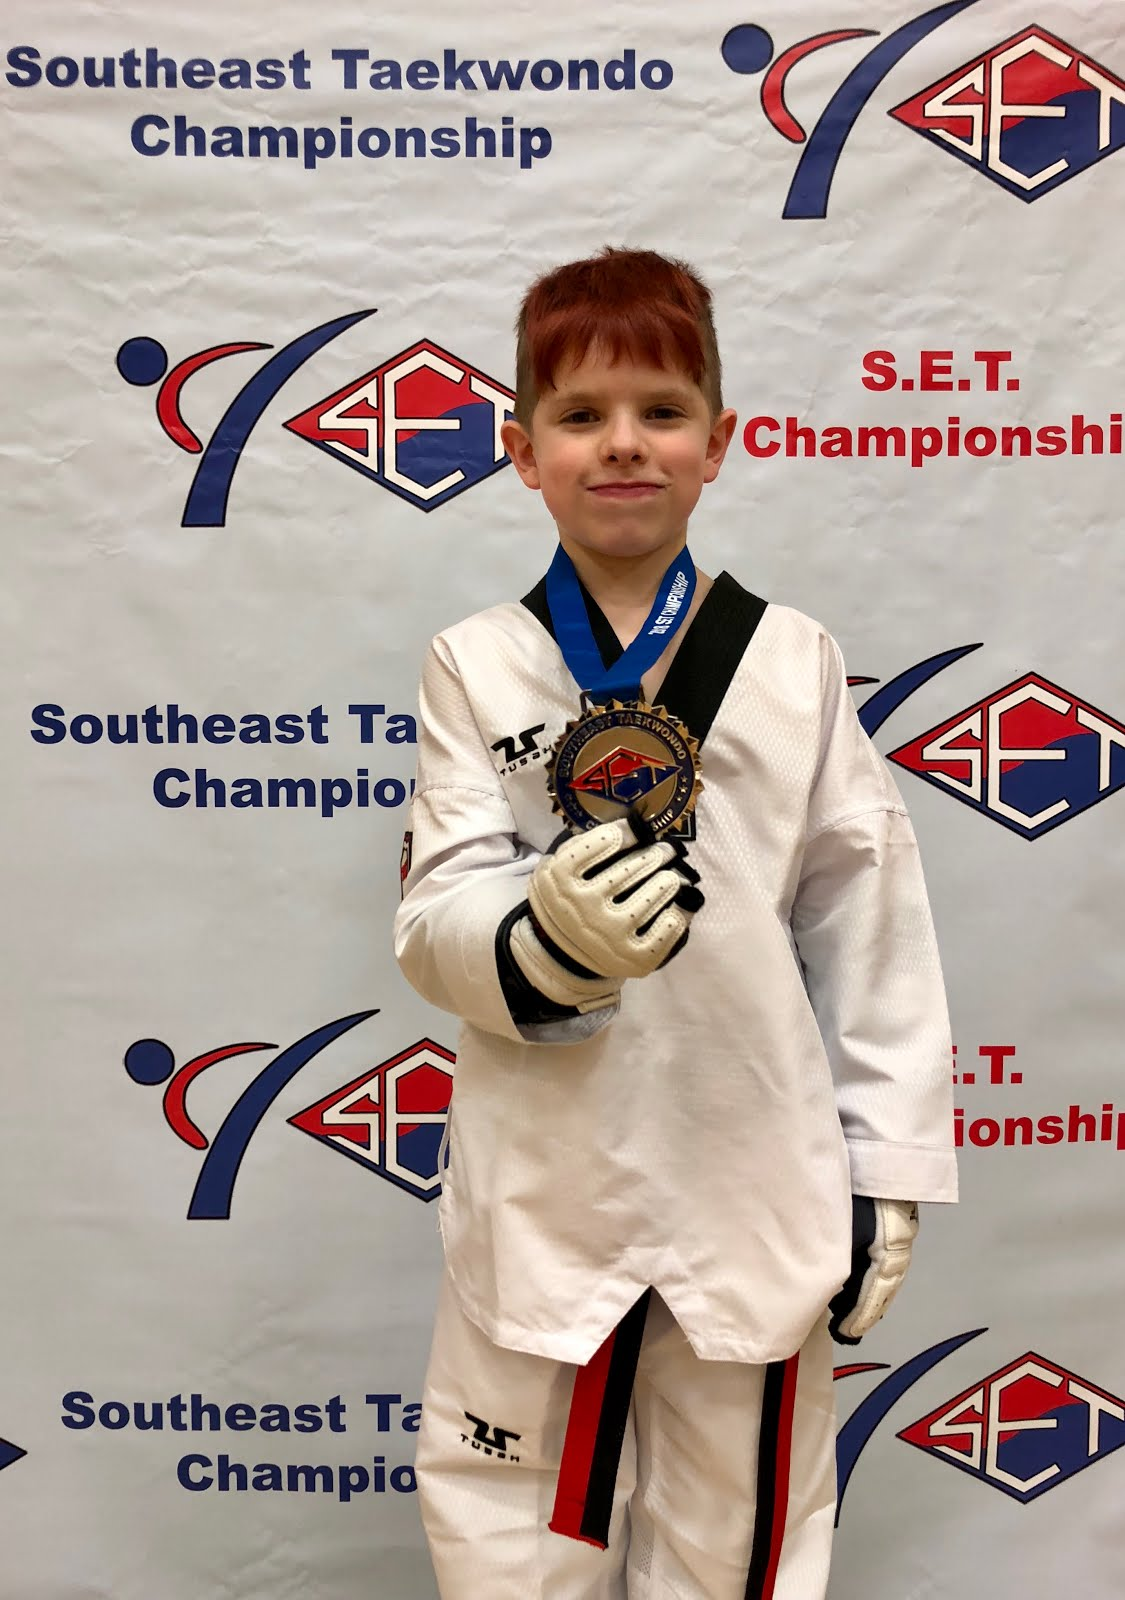 S.E.T. Championship Silver Medalist in World Class Sparring January 13, 2018